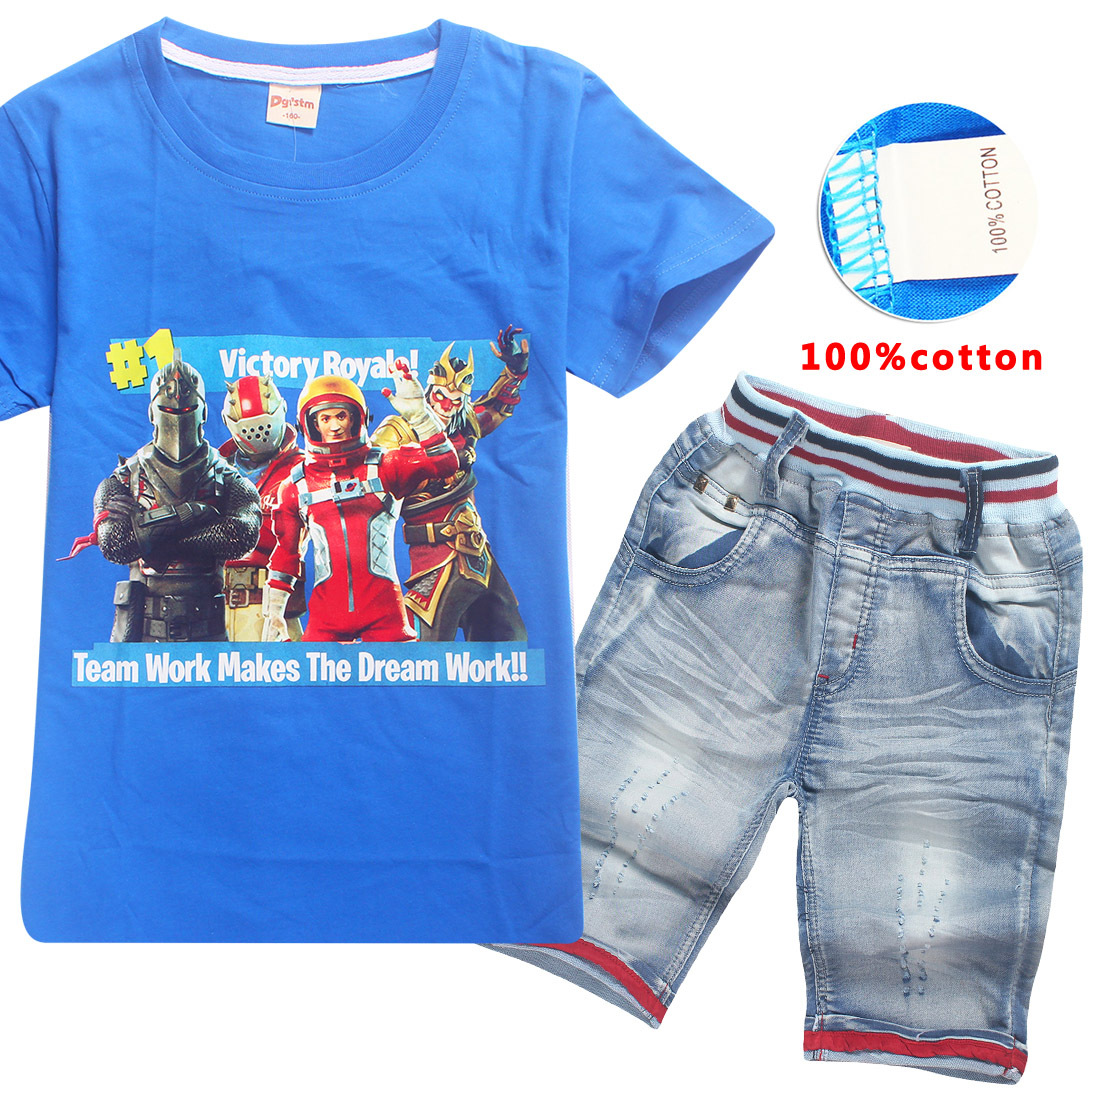 Z&Y 6-14Years 2018 Casual Children Clothing Fortnite T Shirt Jeans Short Sets Gentleman Suit Kids Clothes Boys Clothing Set Nova